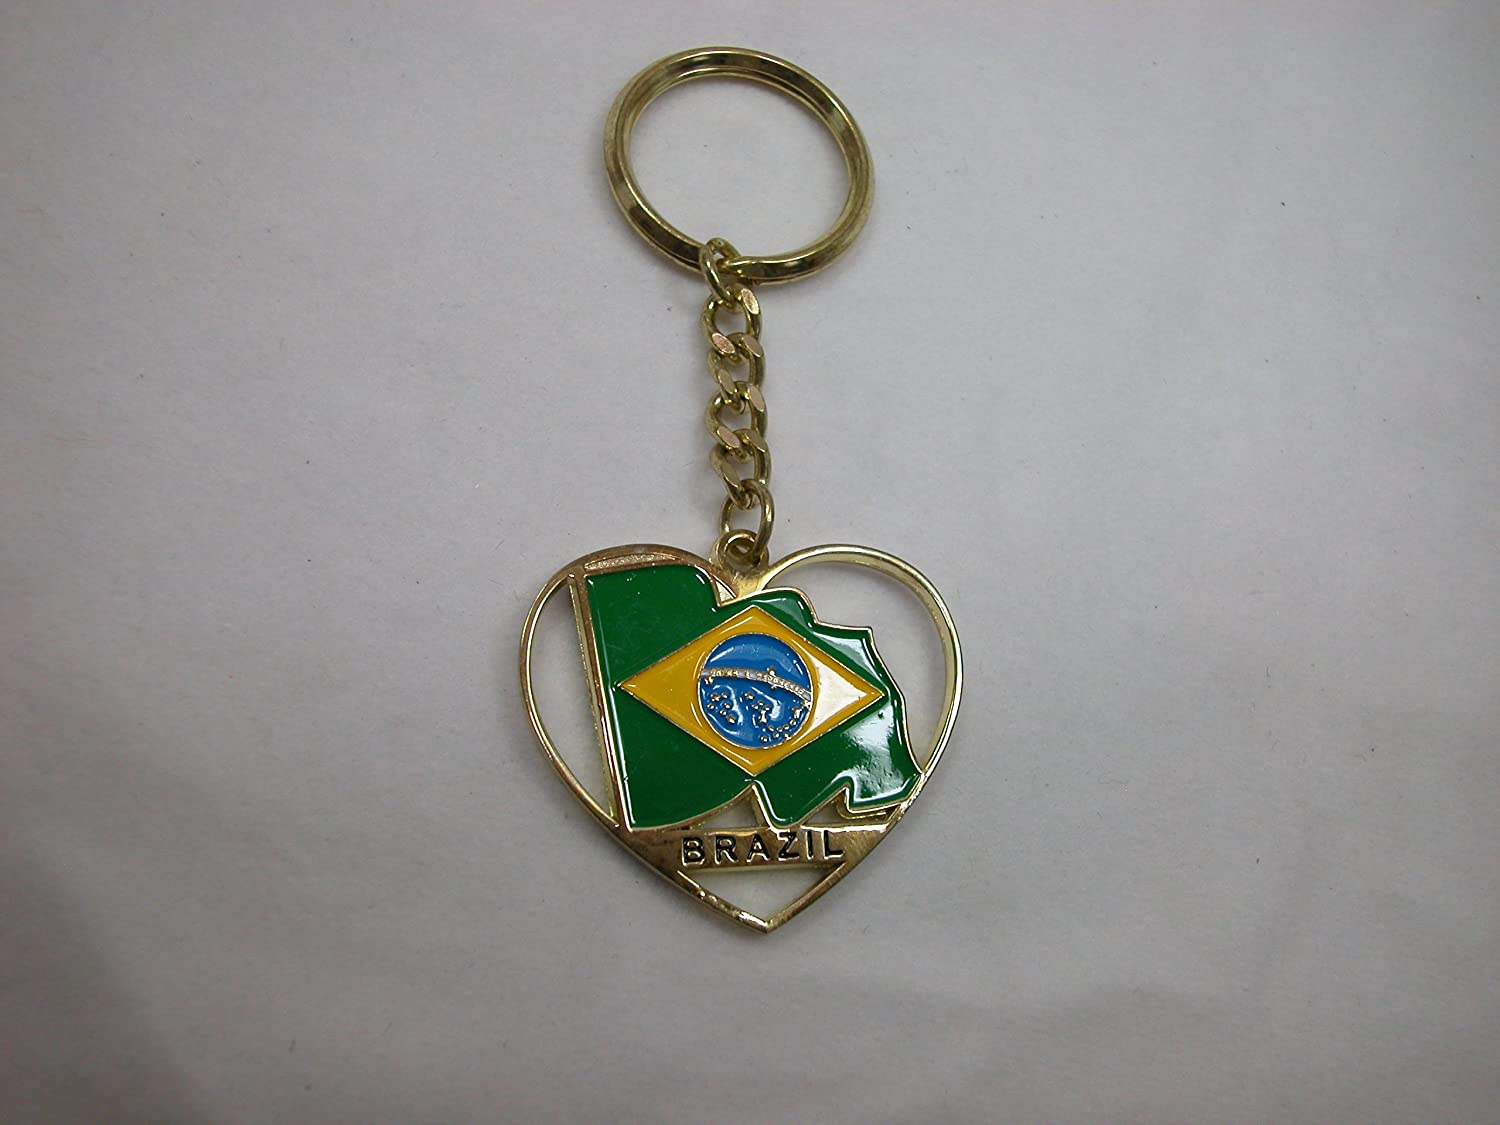 Brazil Super special Collectible Key Chains or gifts - Brazil